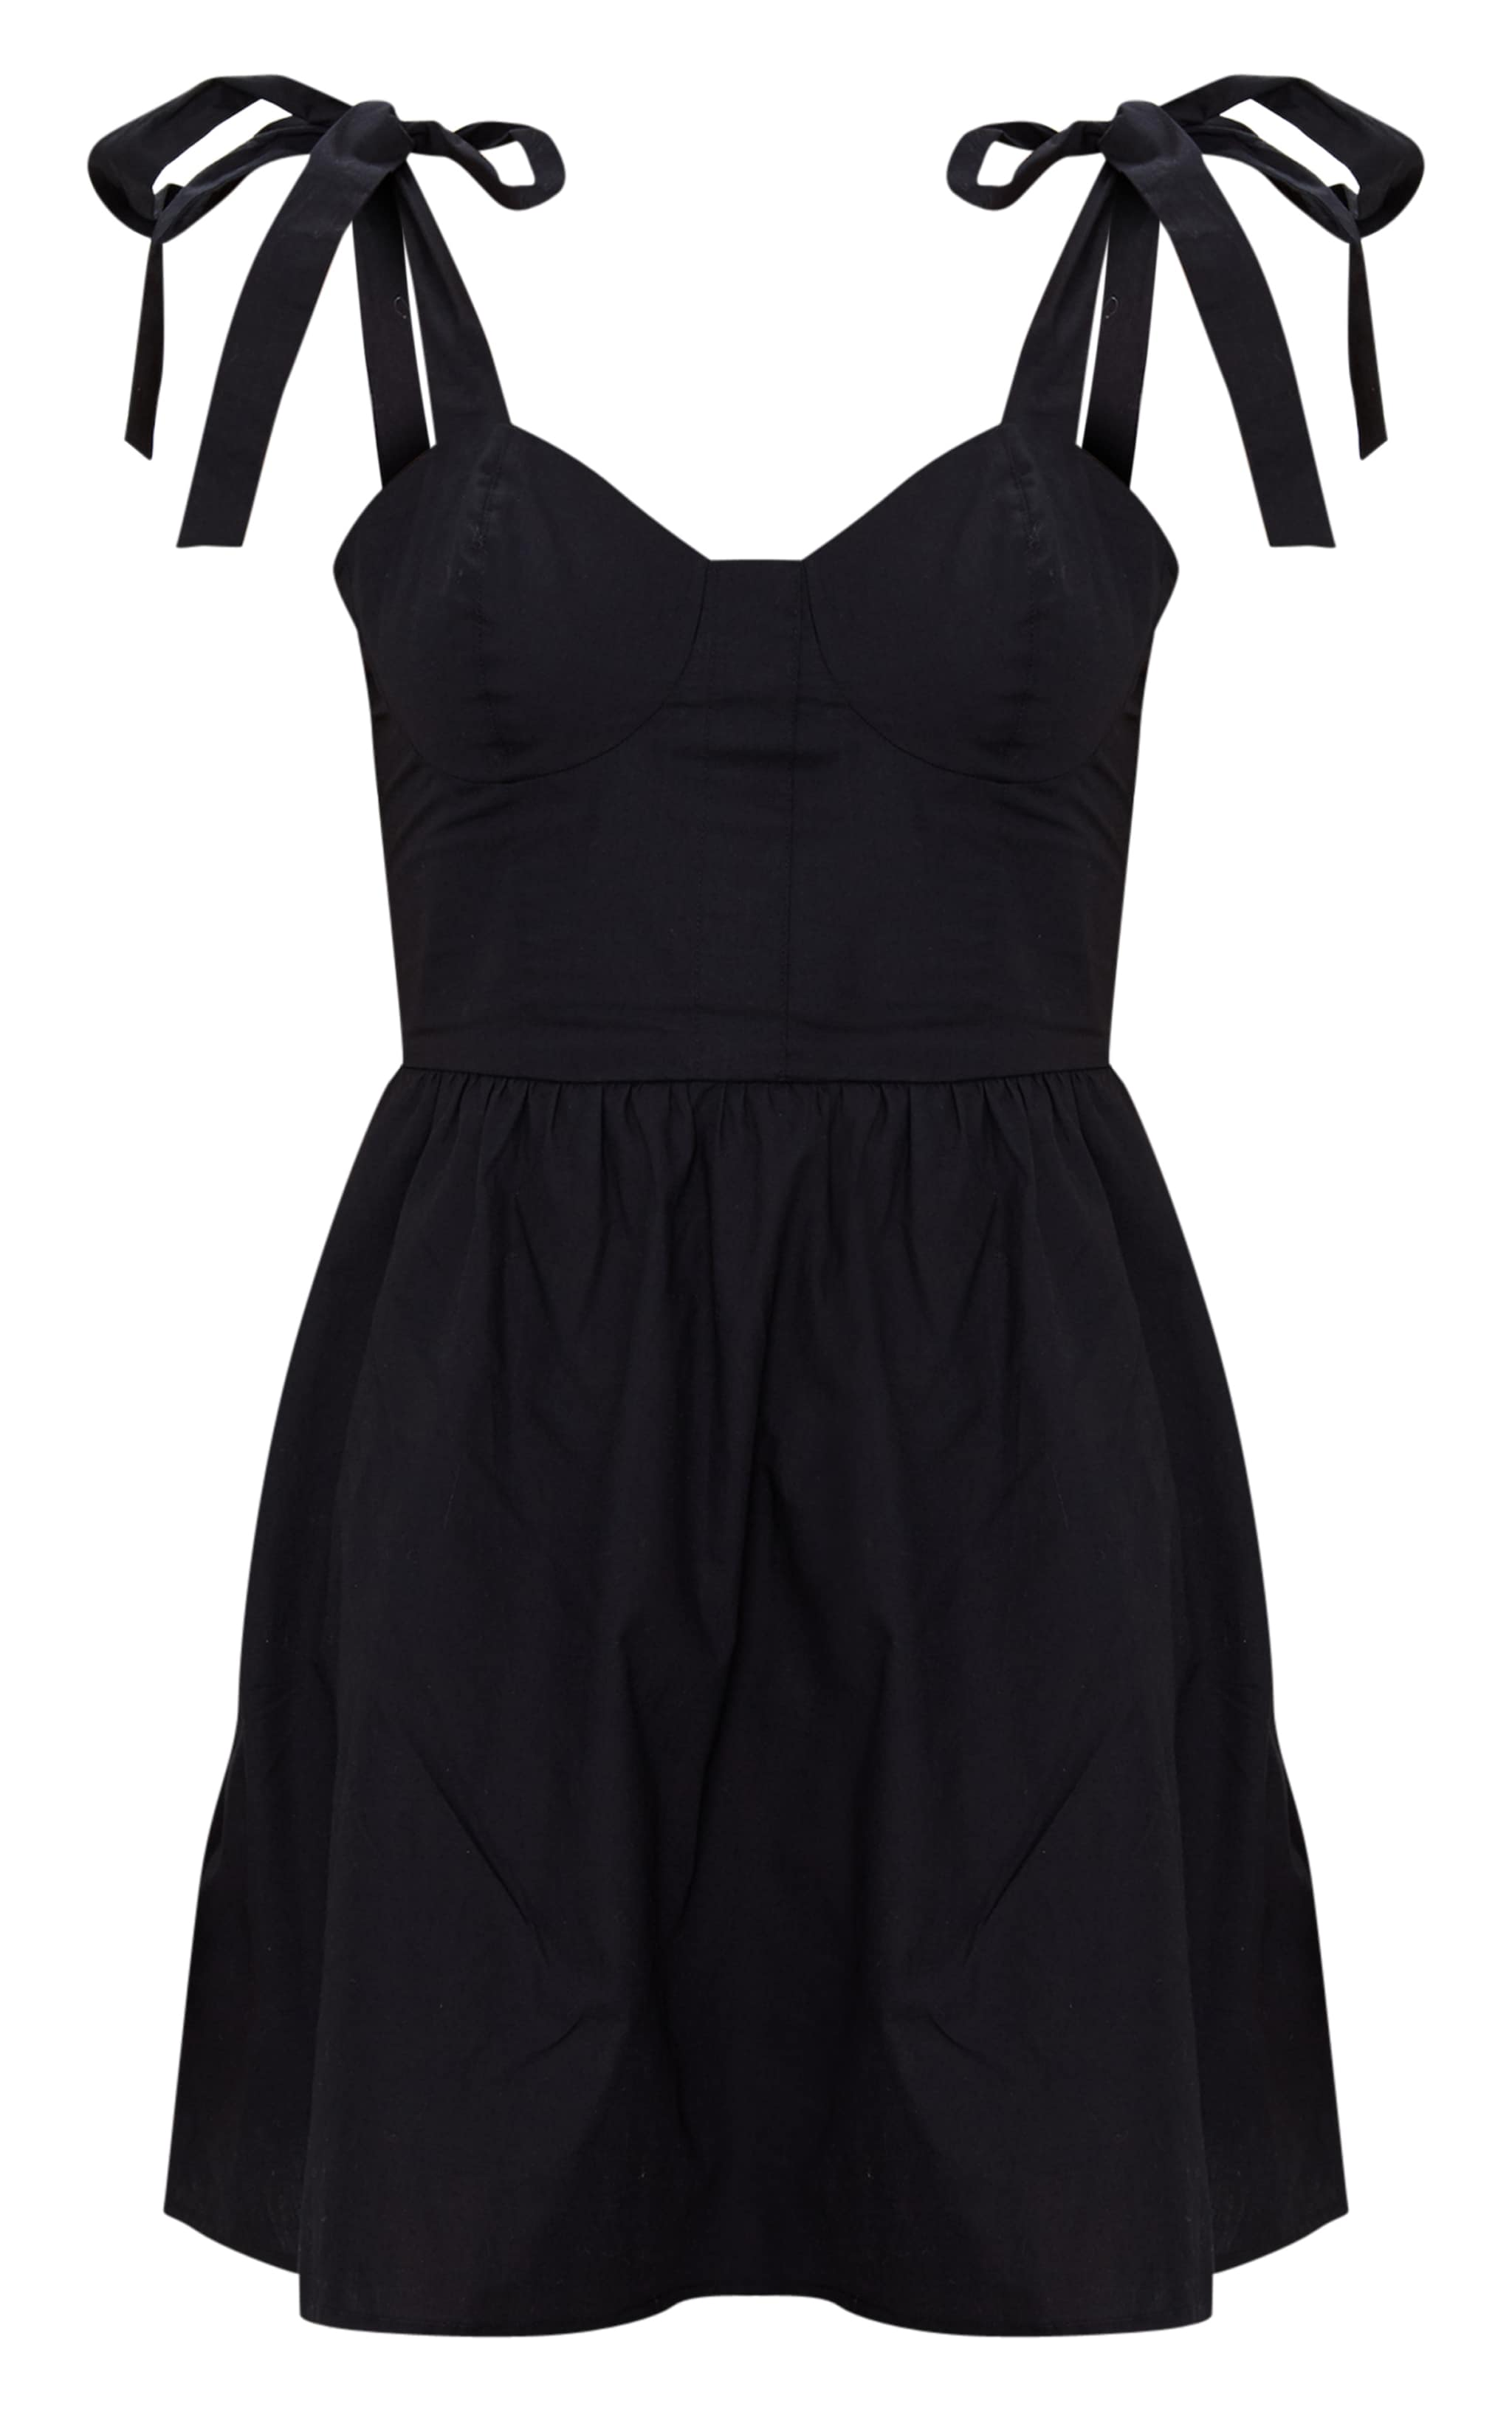 Black Tie Strap Cup Detail Skater Dress 3